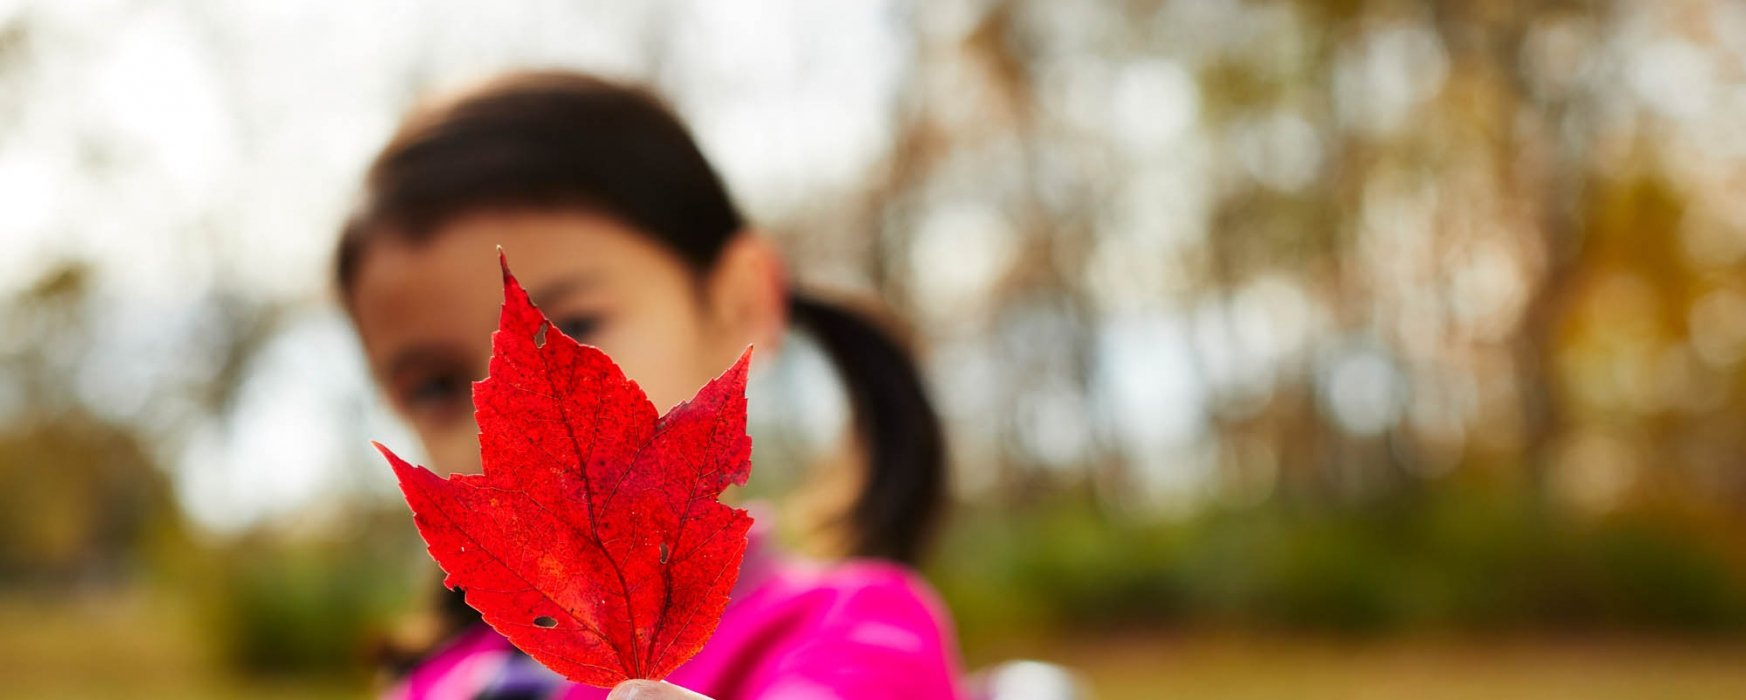 Girl holding a red maple leaf - Lifestyle Photography